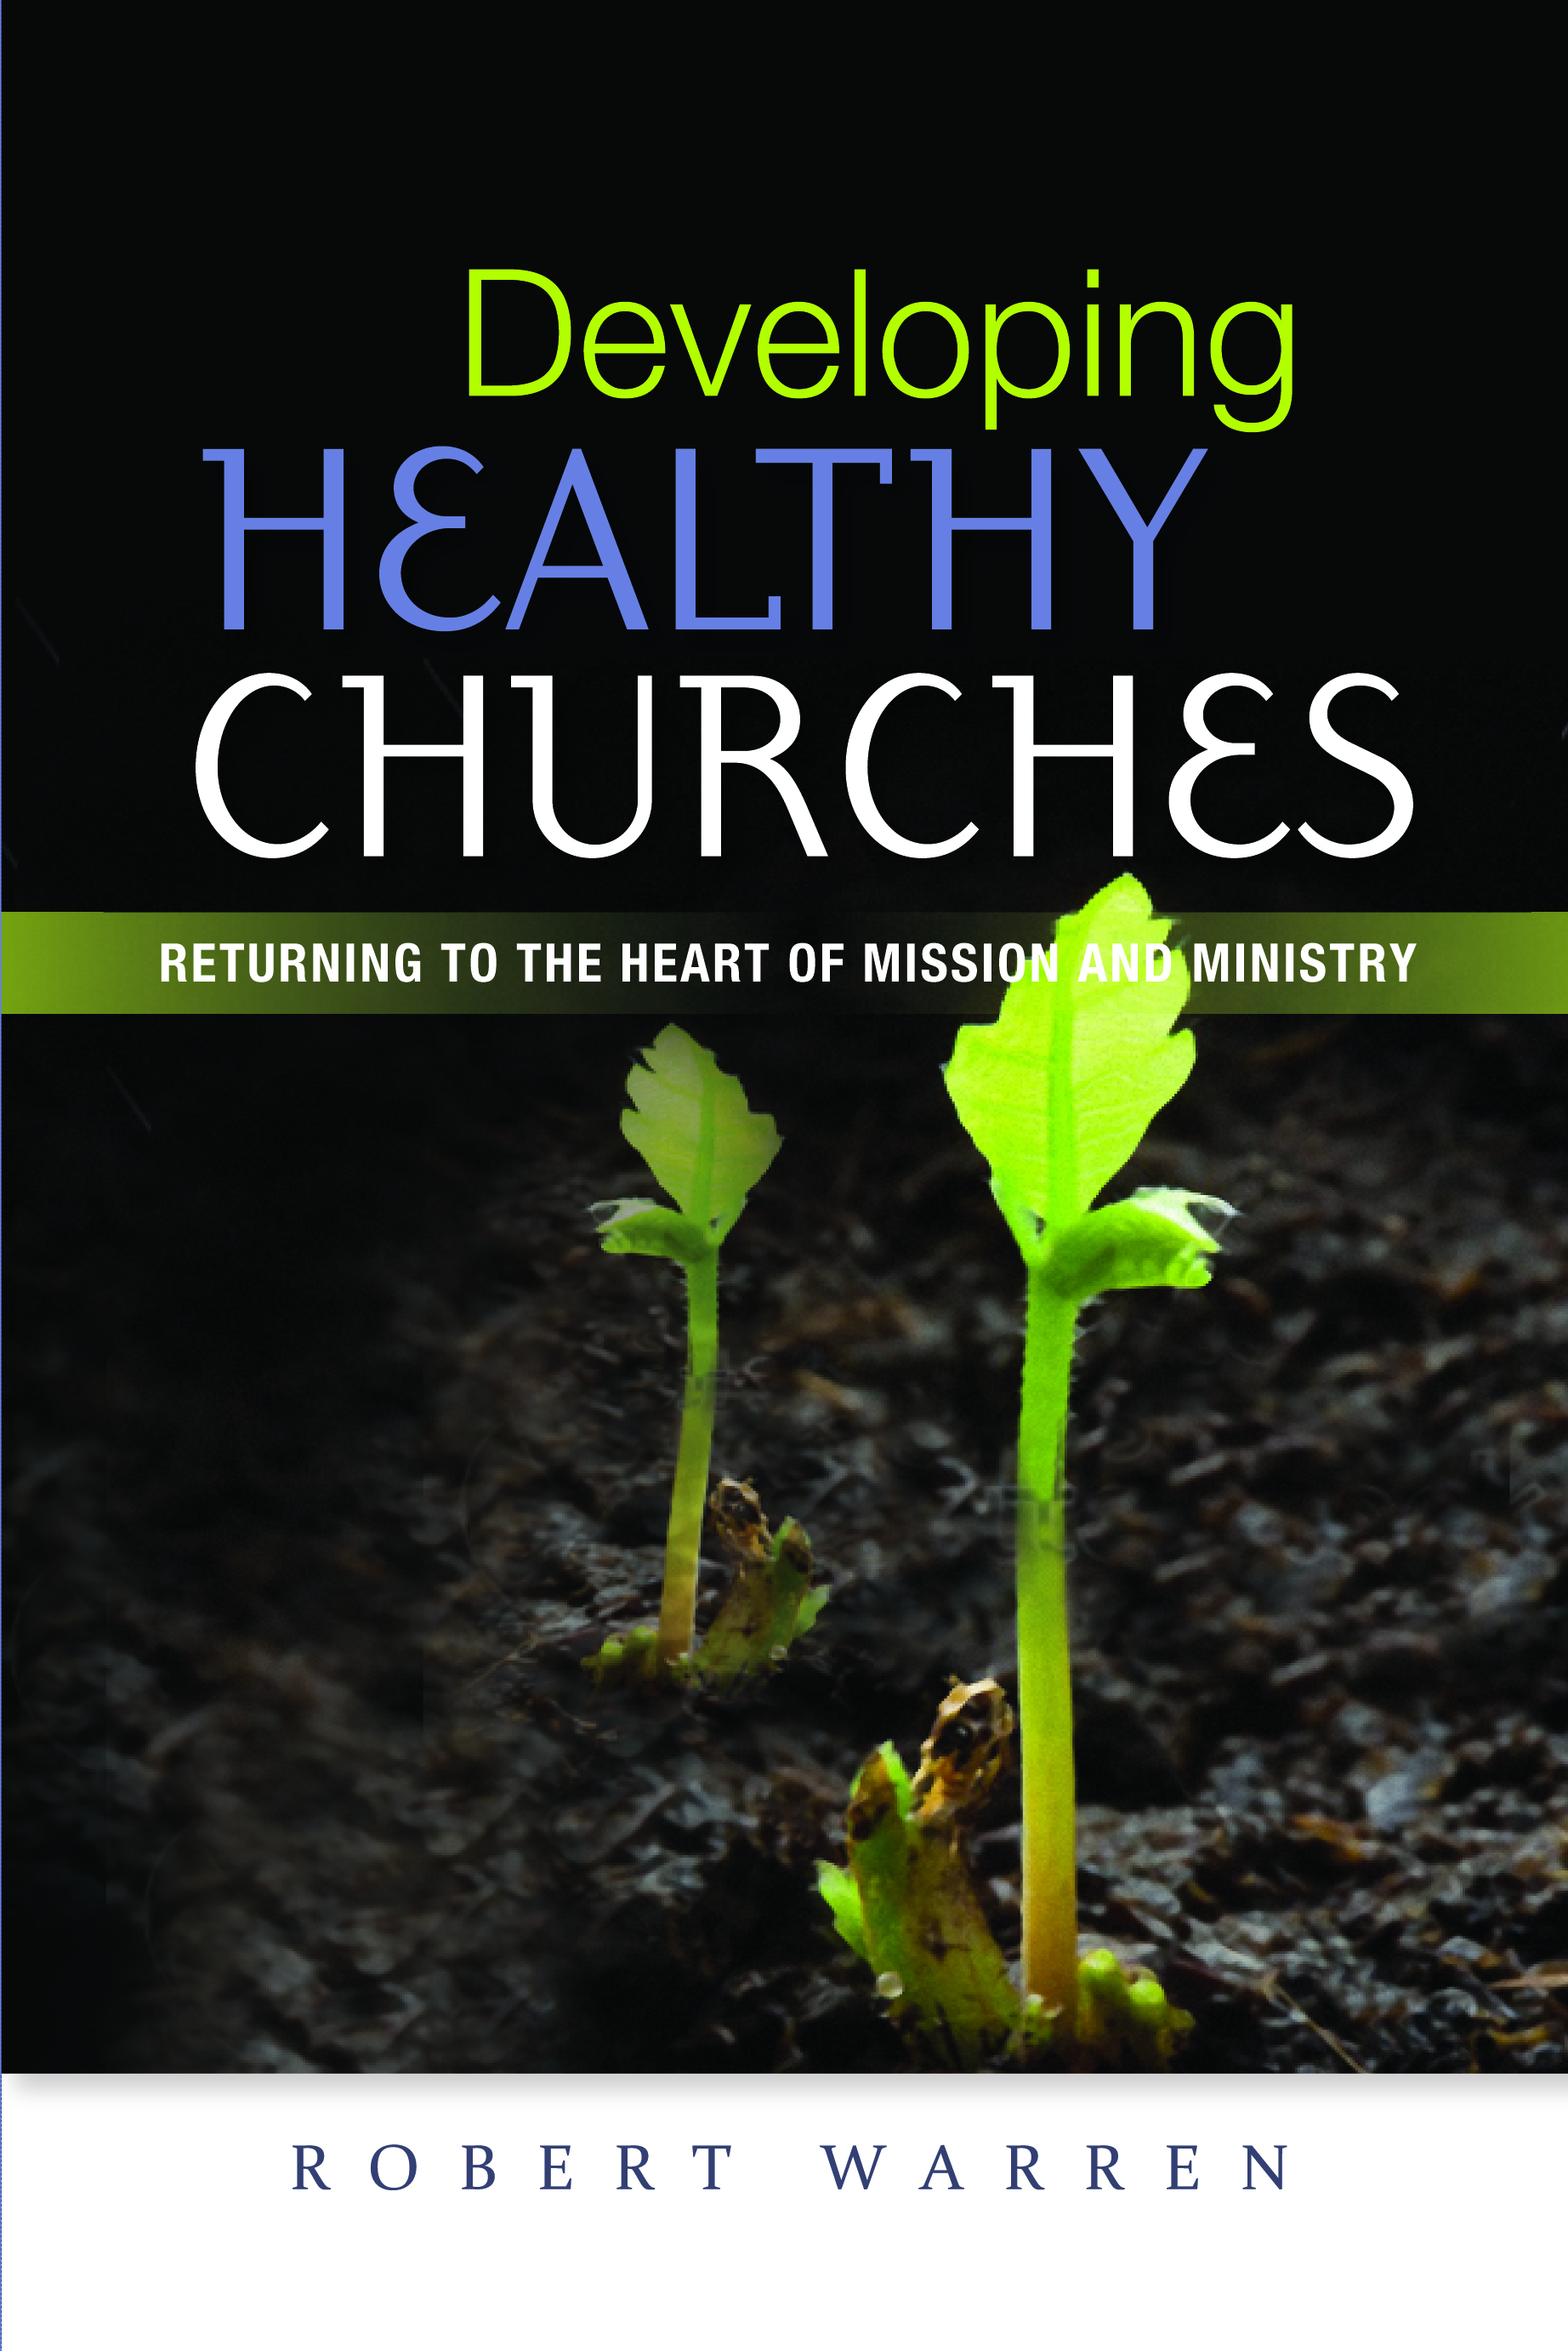 chruch growth essay The apostles executed the commission with promptness and zeal, the rapid growth and influence of the church under their direction gives evidence of this fact.